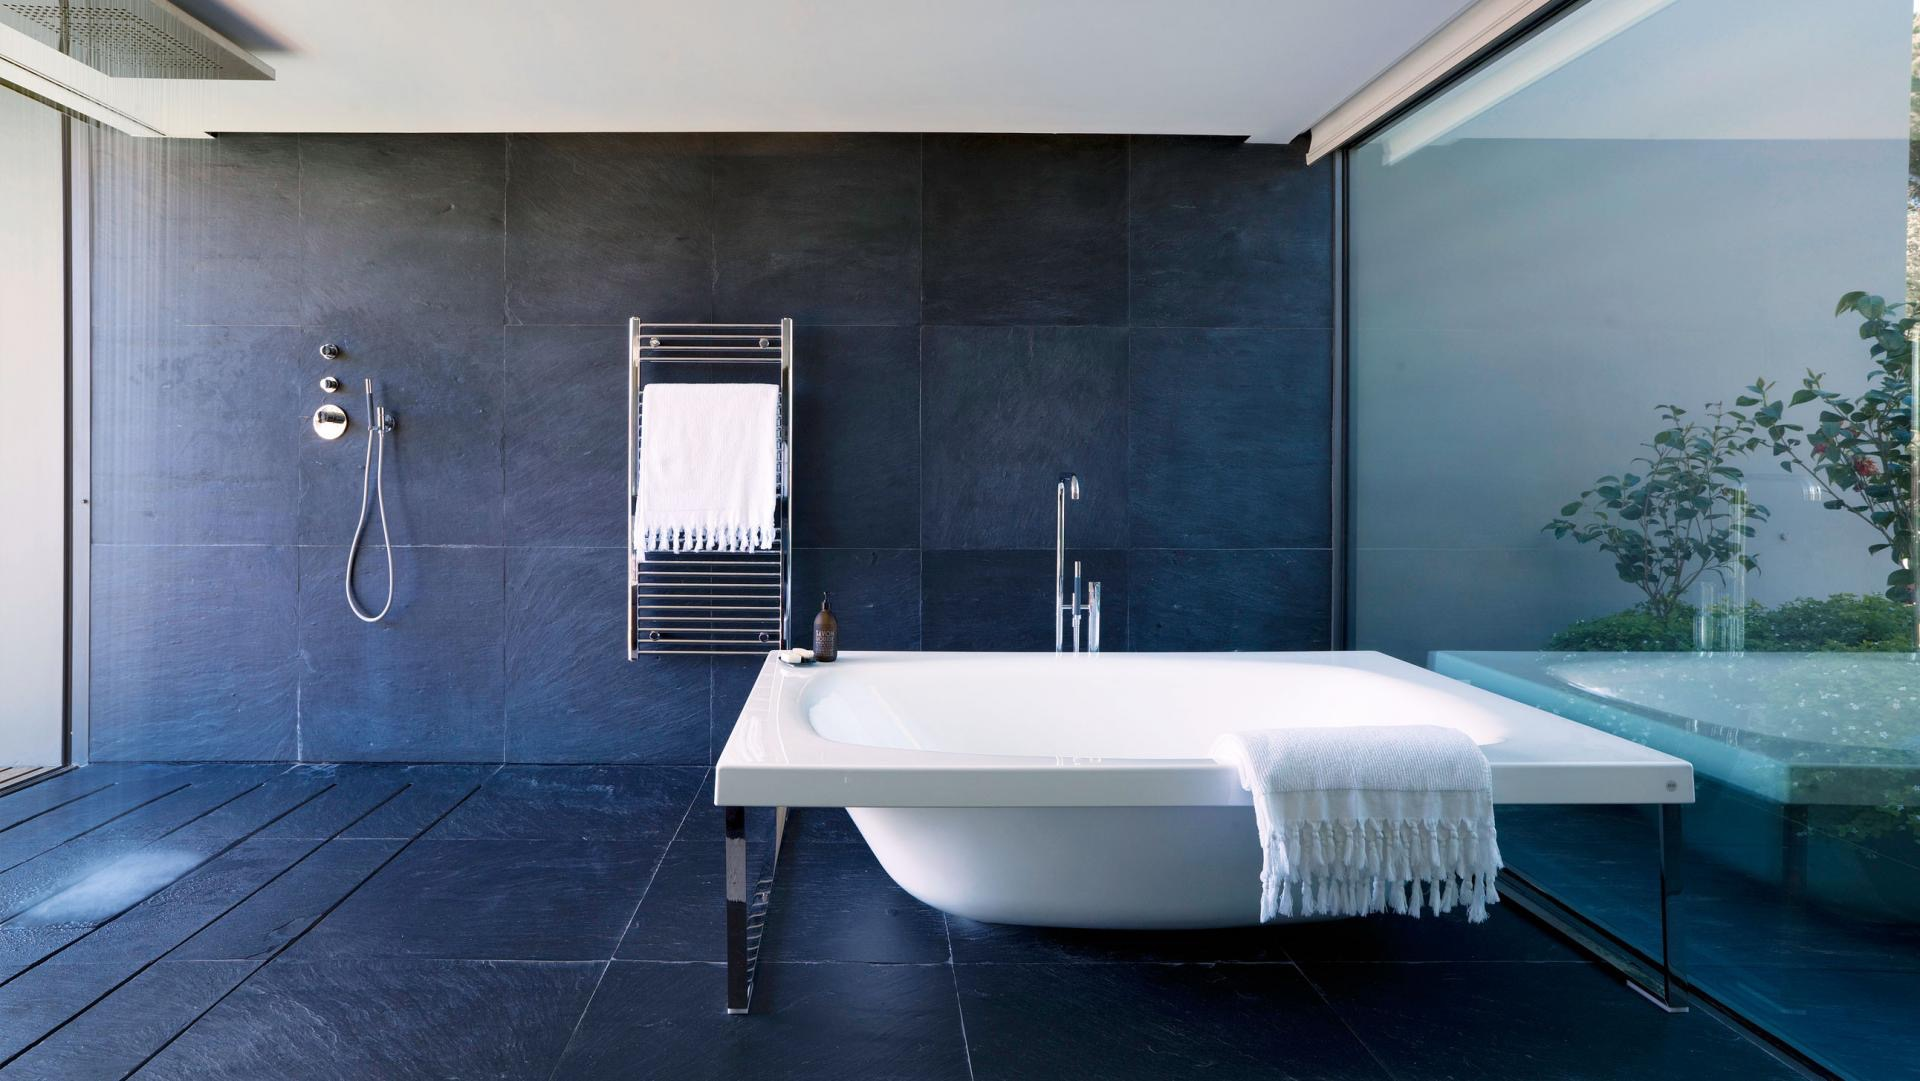 10 reasons why a wet room is a great idea | Making the World ...